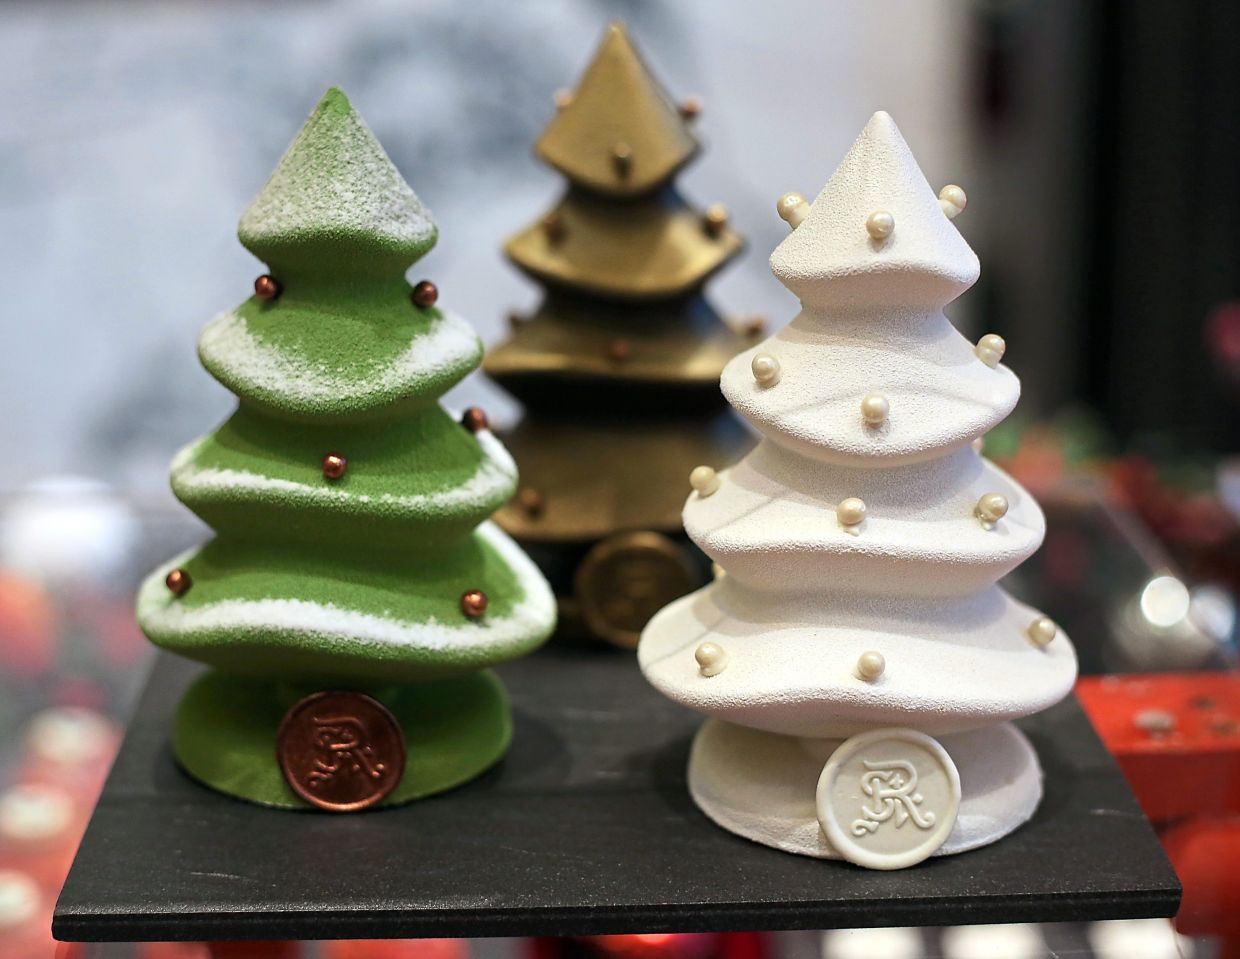 Chocolate Christmas Trees filled with homemade pralines and candies.